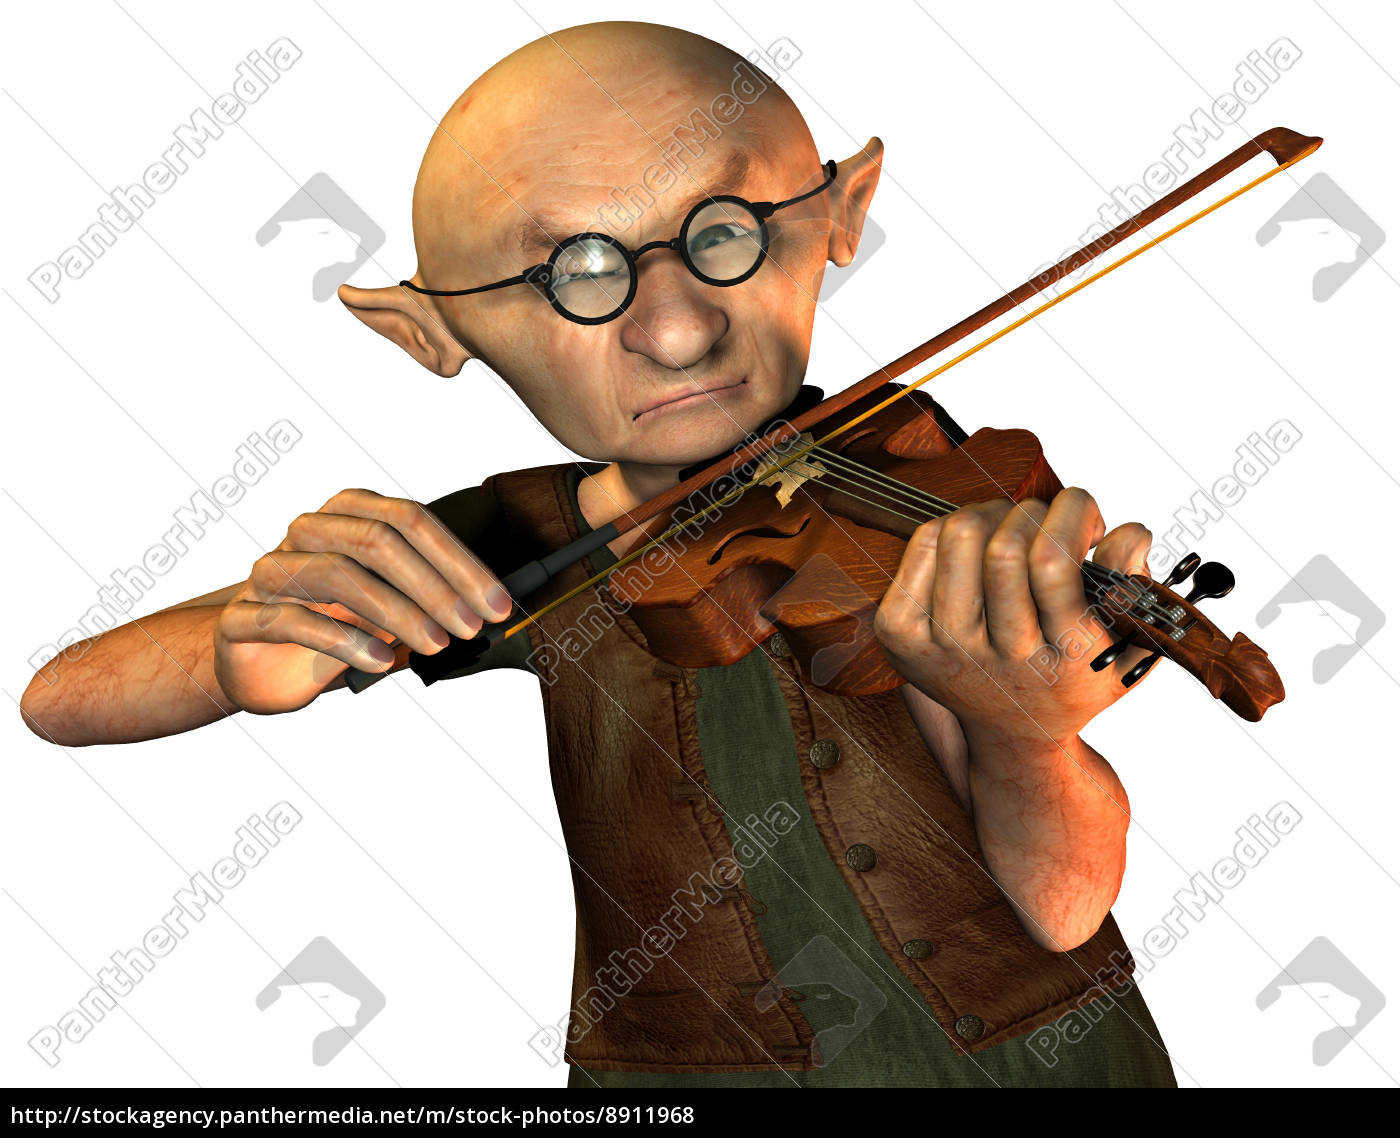 Royalty free photo 8911968 - old man with violin